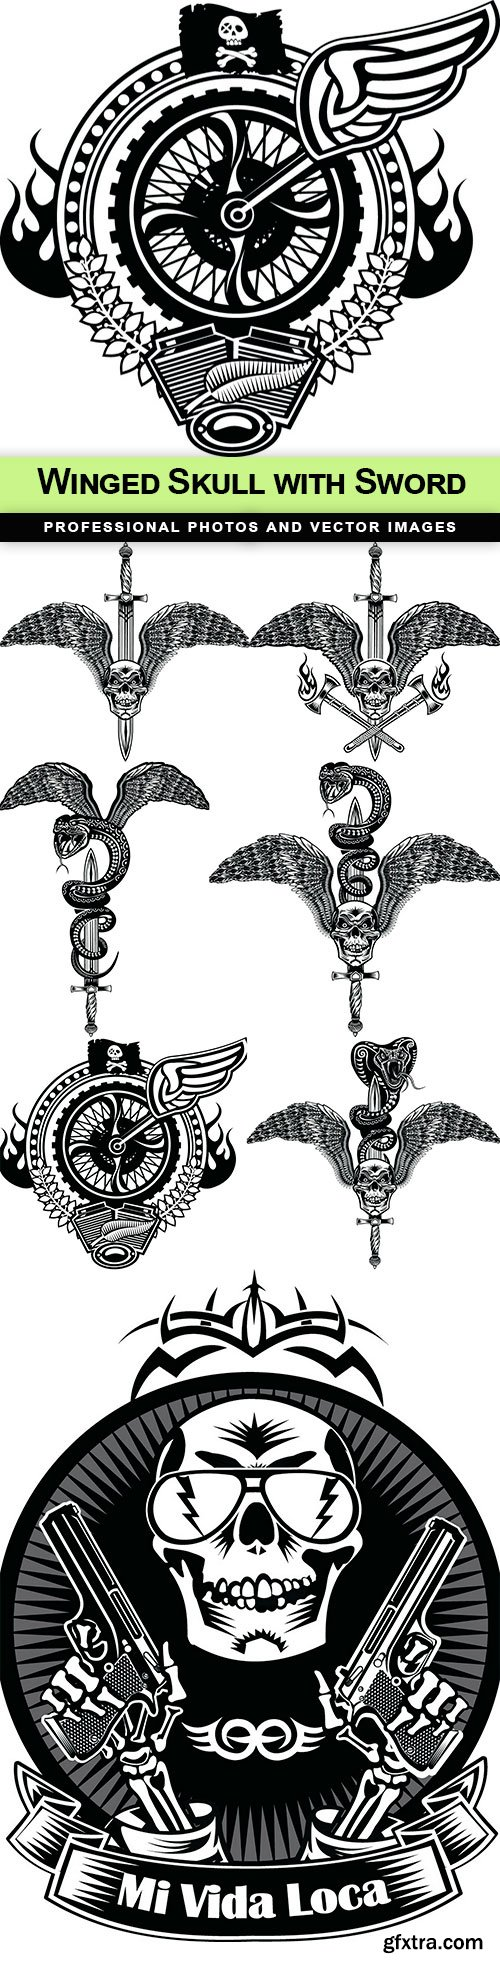 Winged Skull with Sword - 7 EPS